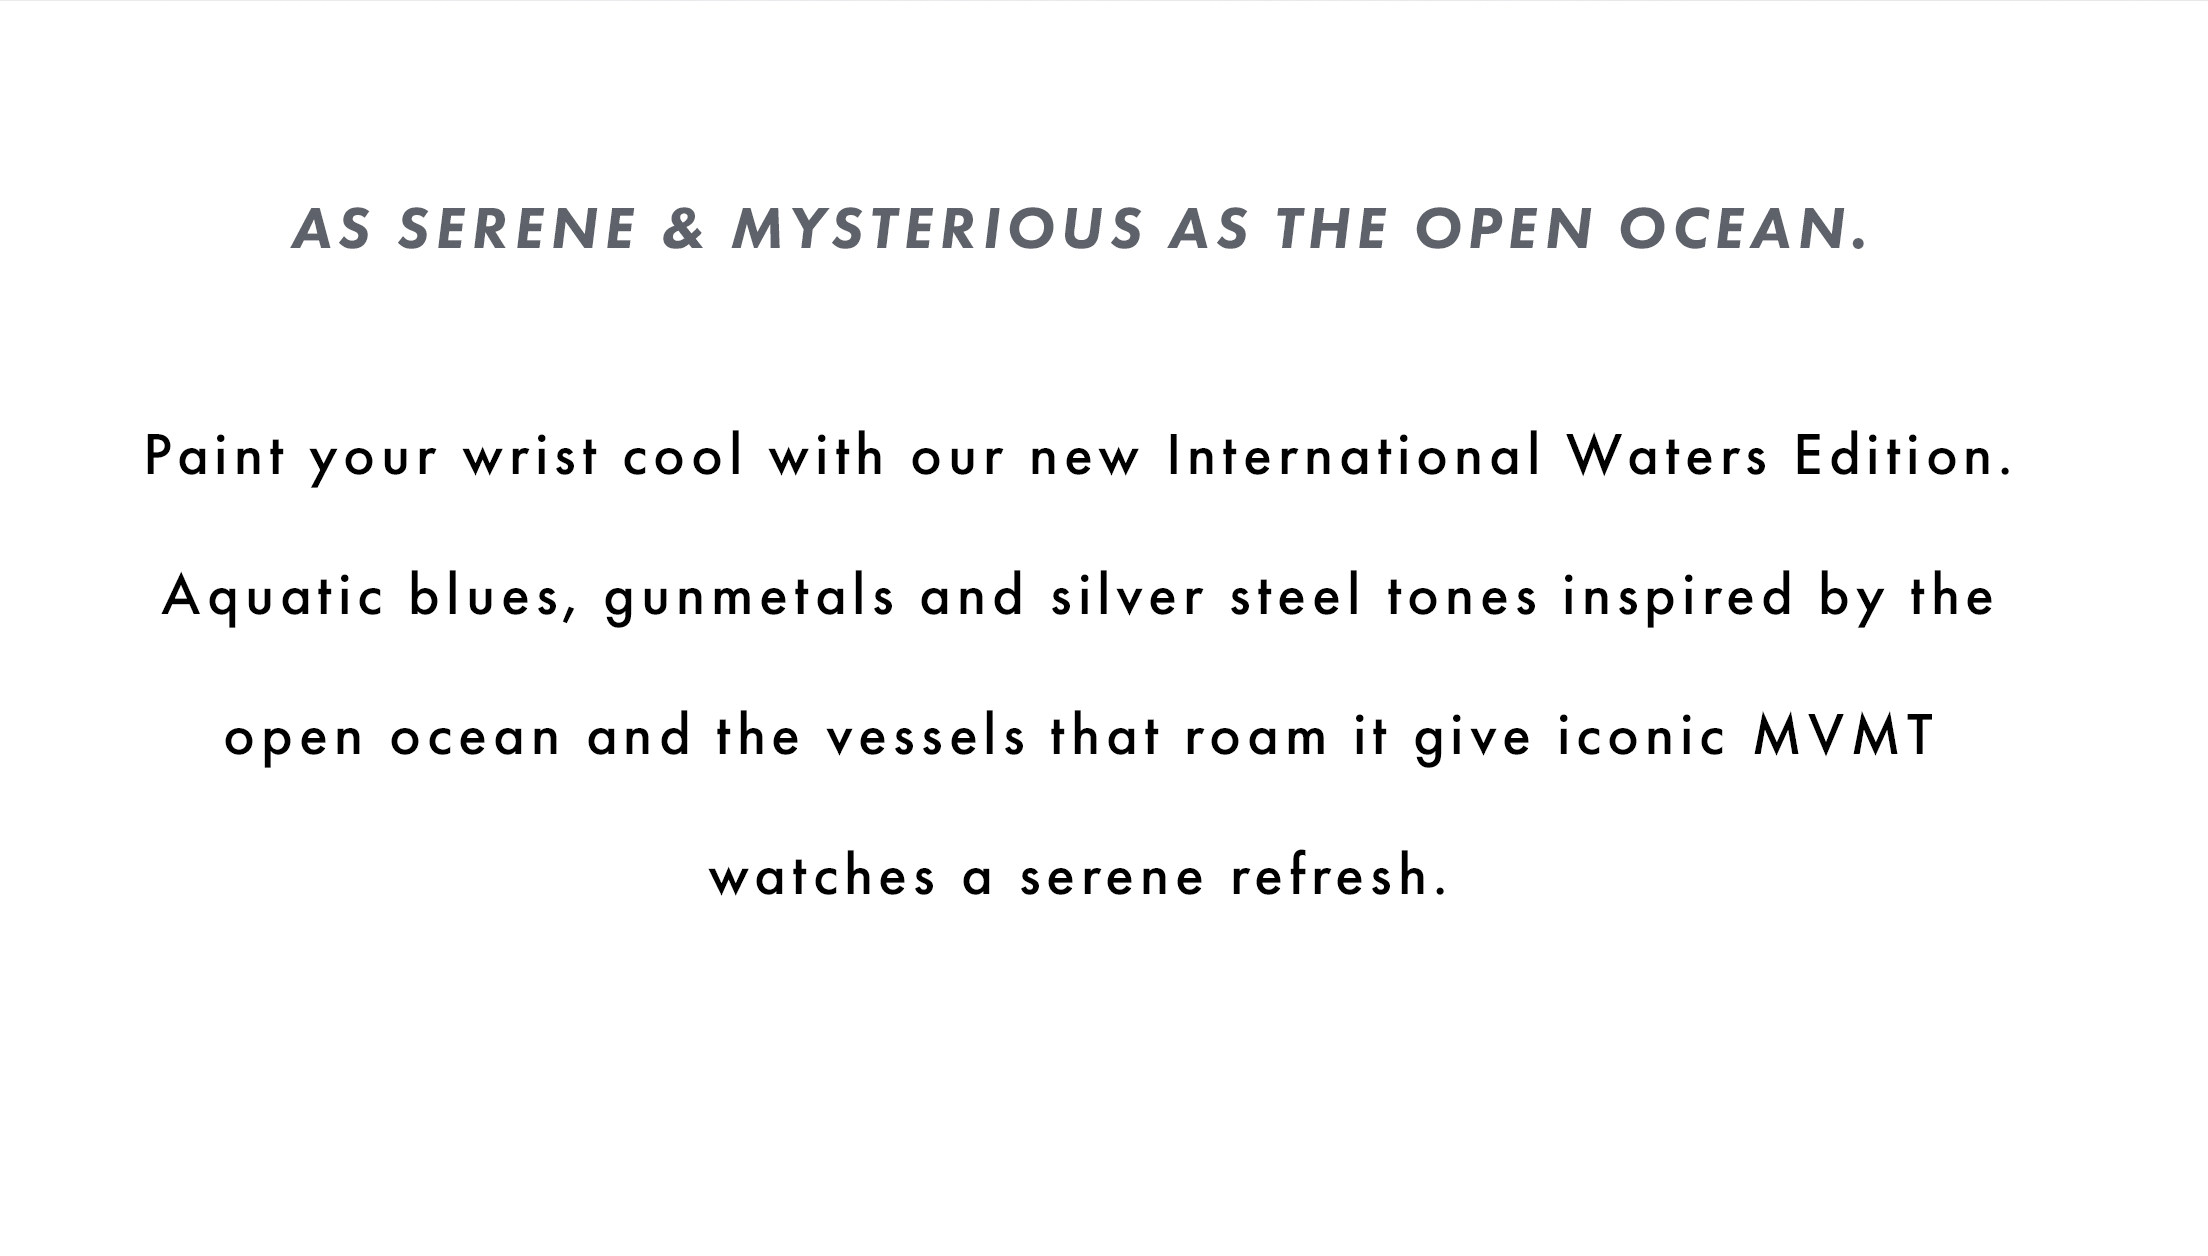 As serene & mysterious as the open ocean. Paint your wrist cool with our new International Waters Edition. Aquatic blues, gunmetals, and silver steel tones inspired by the open ocean and the vessels that roam it give iconic MVMT watches a serene refresh.